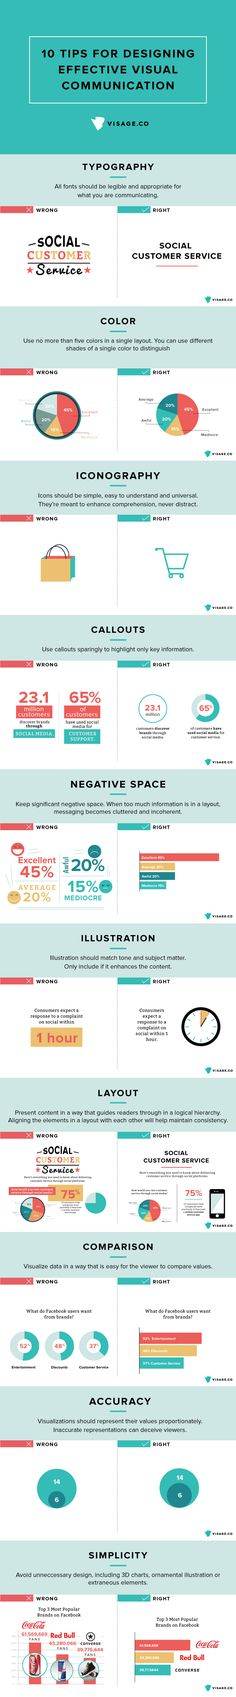 10 Tips For Designing Effective Visual Communication - #infographic #designing #contentmarketing